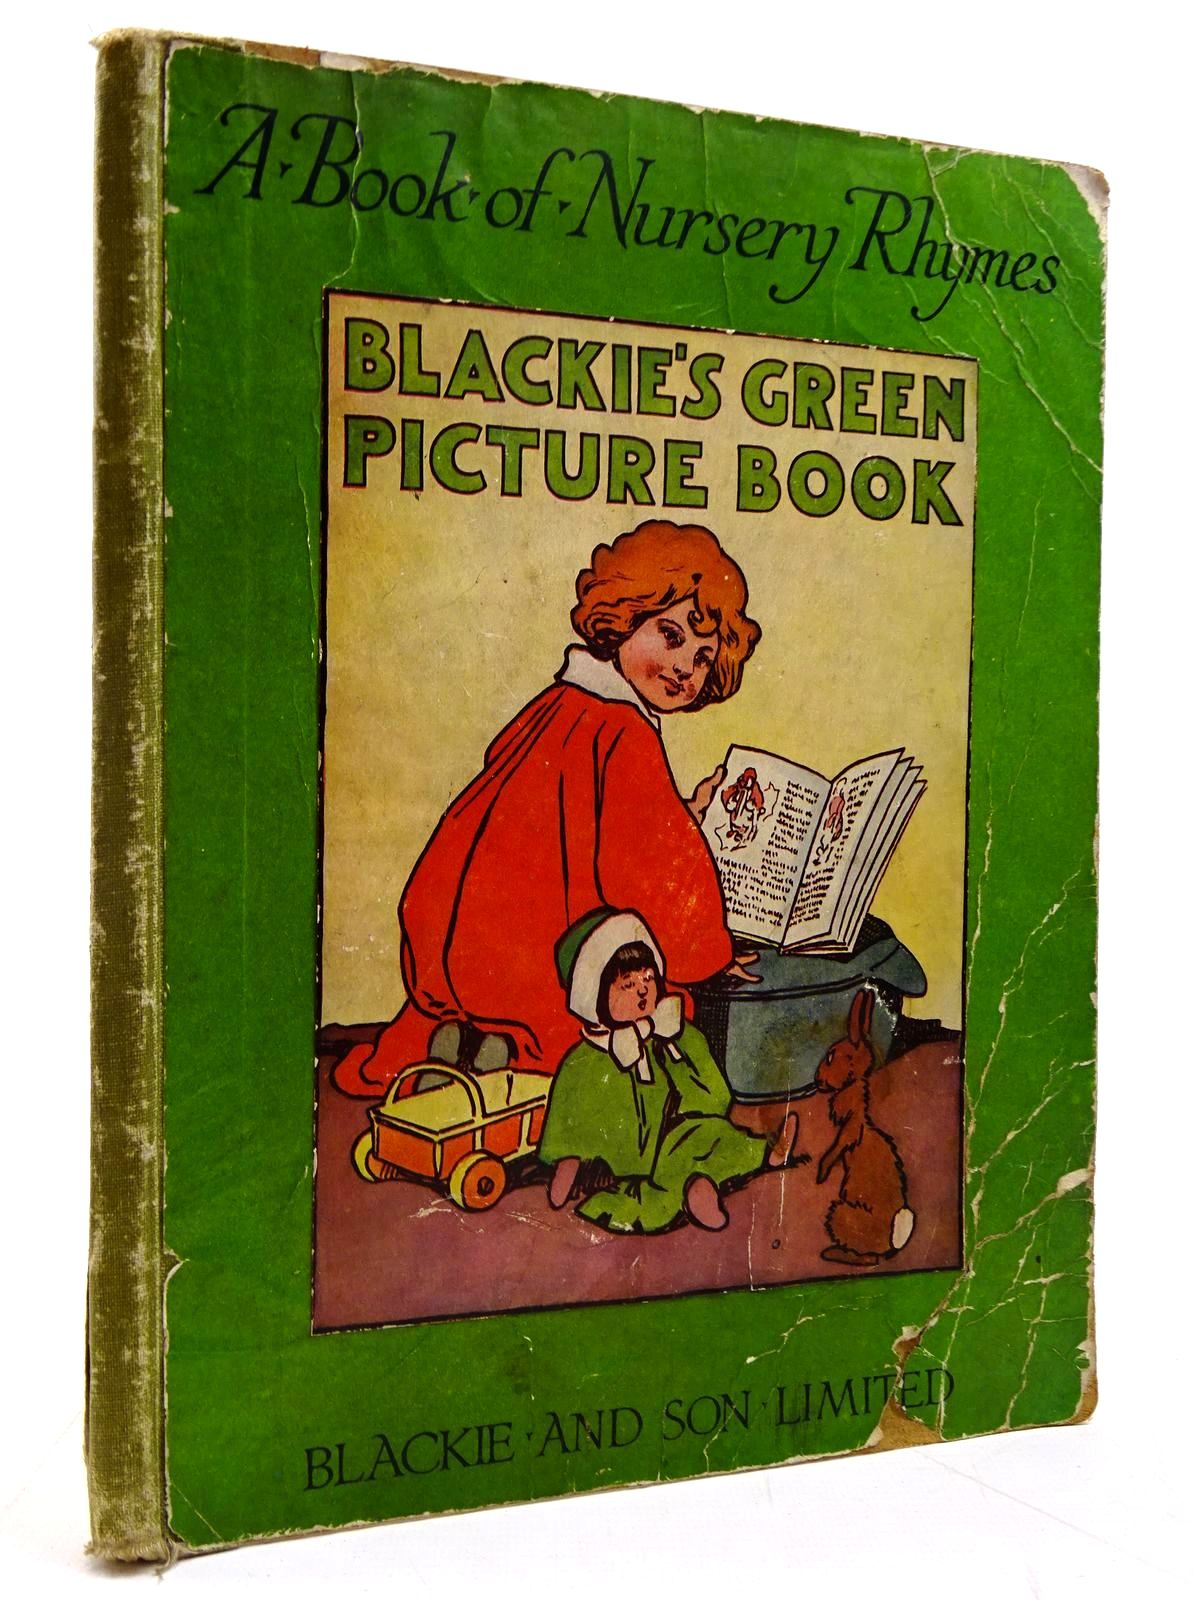 Photo of BLACKIE'S GREEN PICTURE-BOOK OF NURSERY RHYMES illustrated by Hassall, John published by Blackie & Son Ltd. (STOCK CODE: 2131040)  for sale by Stella & Rose's Books